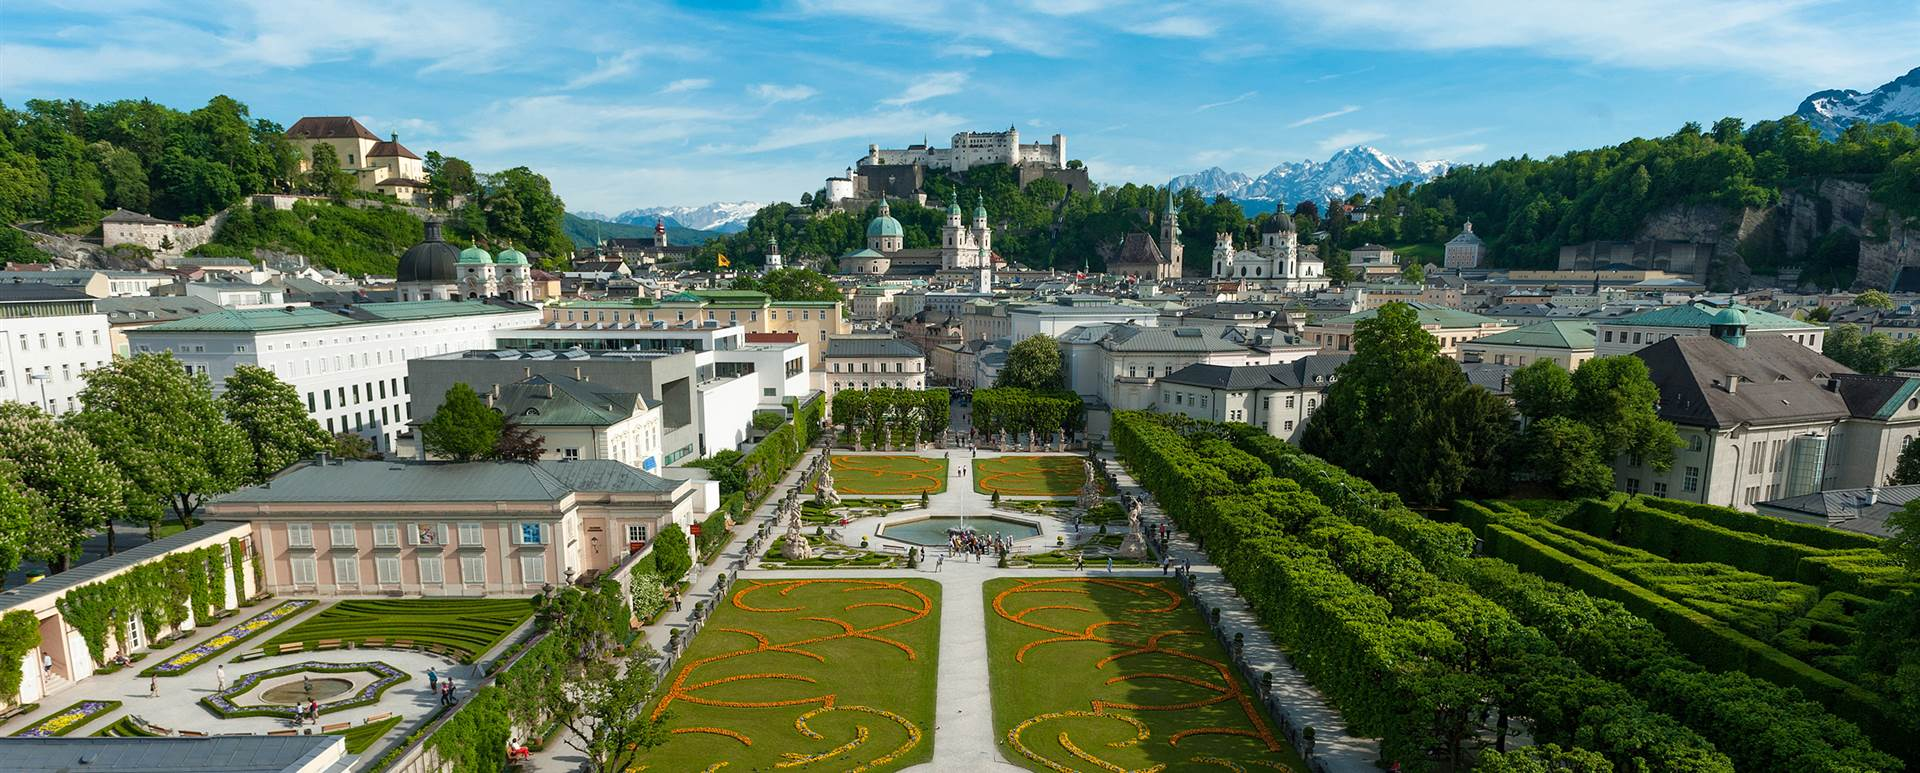 Mirabell Gardens Salzburg with fortress in the background